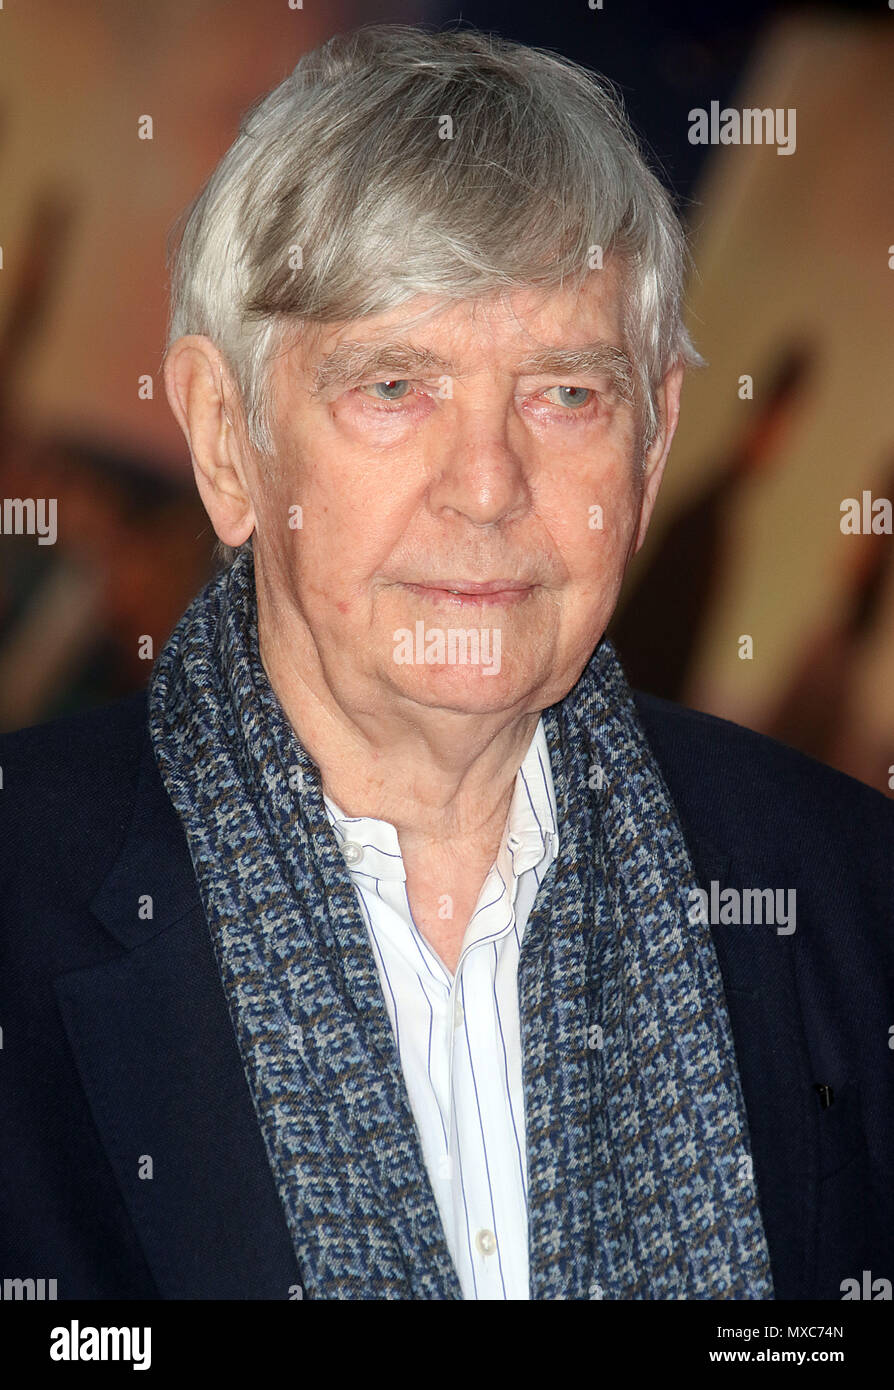 April 09, 2018 - Tom Courtenay attending The Guernsey Literary and Potato Peel Pie Society World Premiere, Curzon Mayfair in London, England, UK - Stock Image